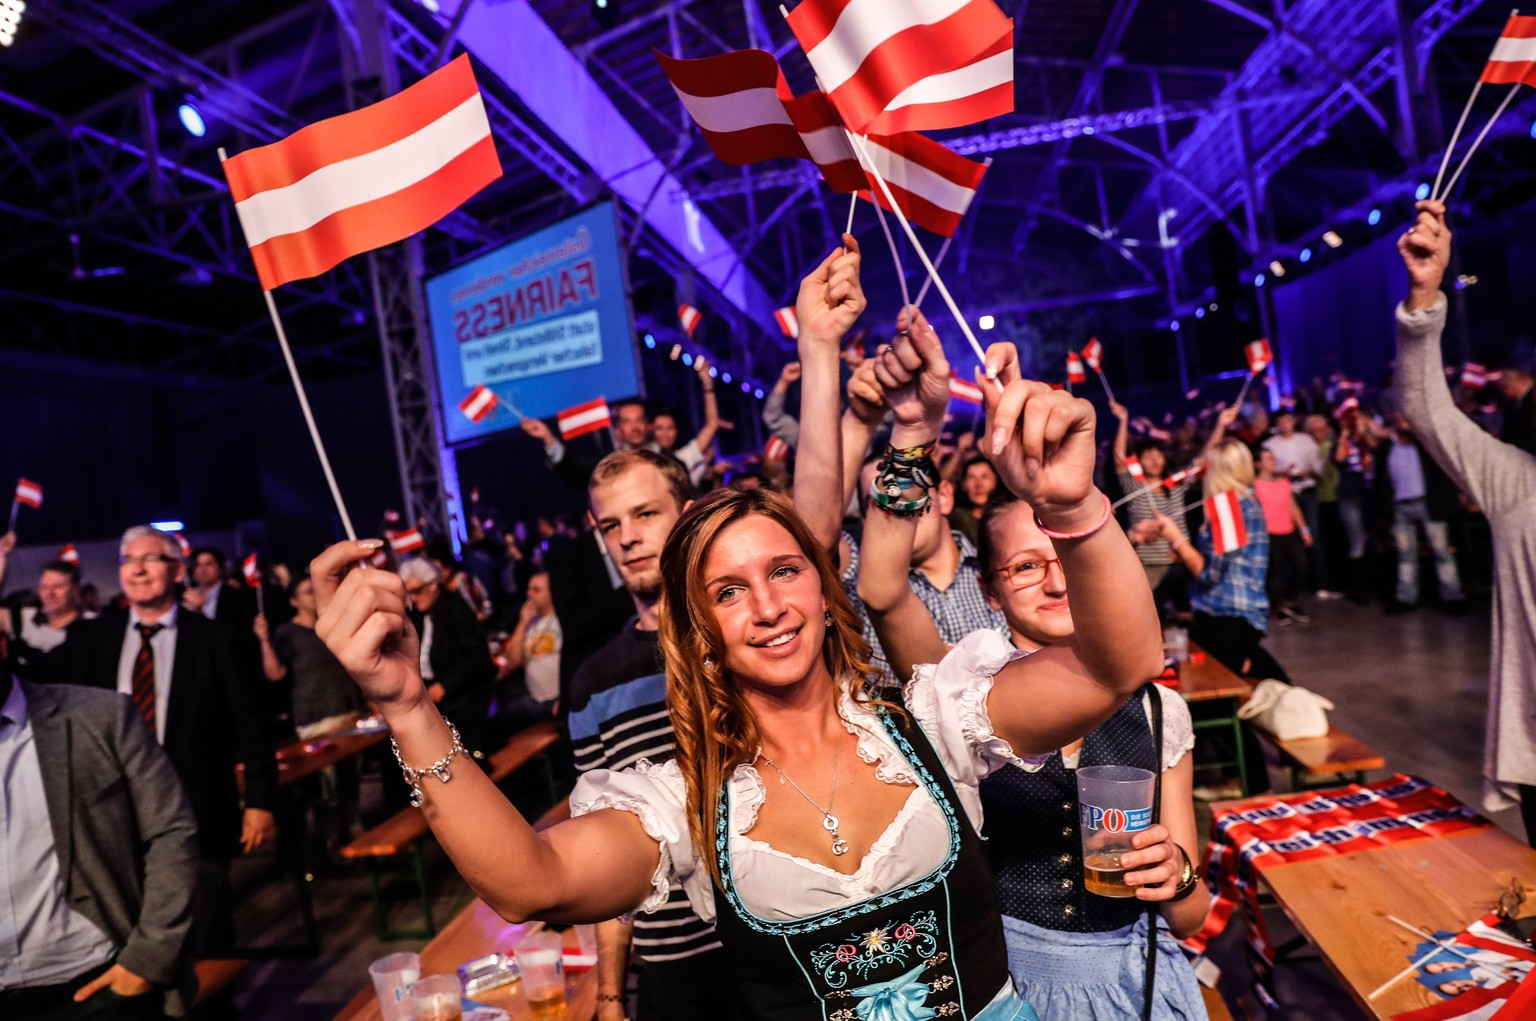 epa06267811 Supporters of the leader of the right-wing Austrian Freedom Party (FPOe) Heinz-Christian Strache (not pictured) waves small Austrian national flags as they watch a projection of the Austrian Federal Elections in Vienna, Austria, 15 October 2017. According to the Interior ministry more than six million people were eligible to vote in the elections for a new federal parliament, the Nationalrat, in Austria.  EPA/VALDRIN XHEMAJ